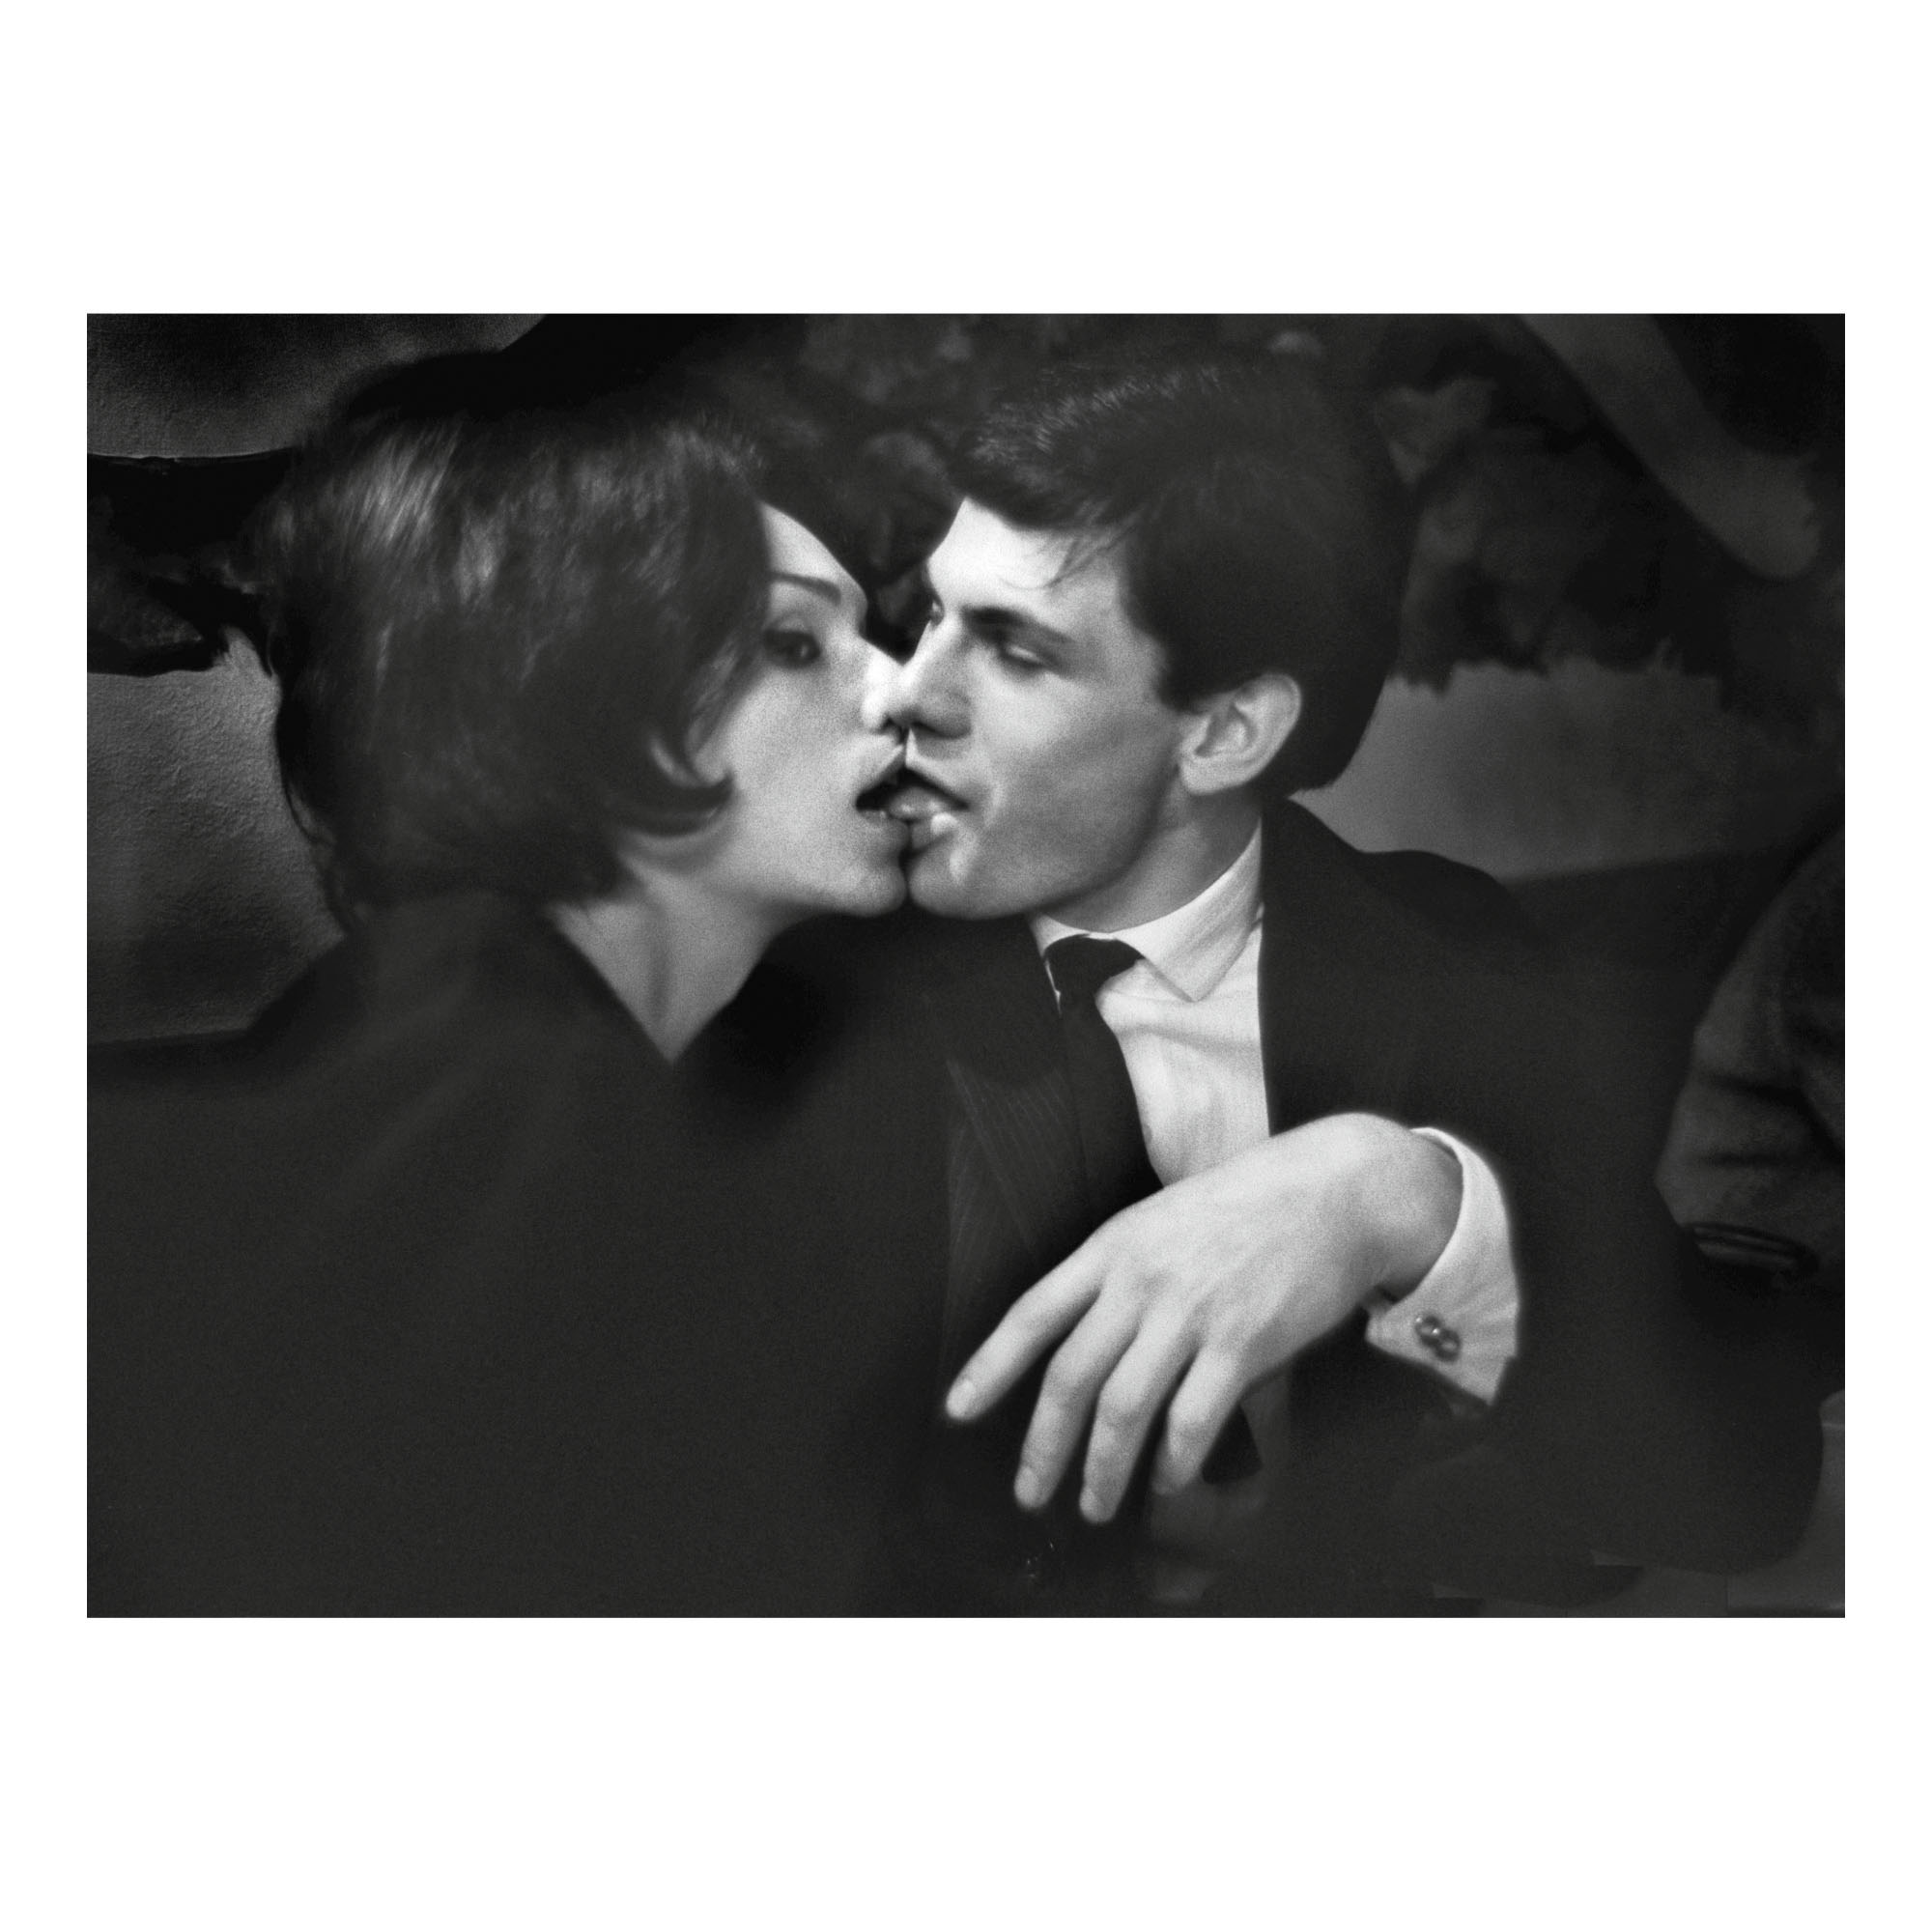 CHRISTER STRÖMHOLM | NANA KISSING A MAN, PLACE BLANCHE, PARIS